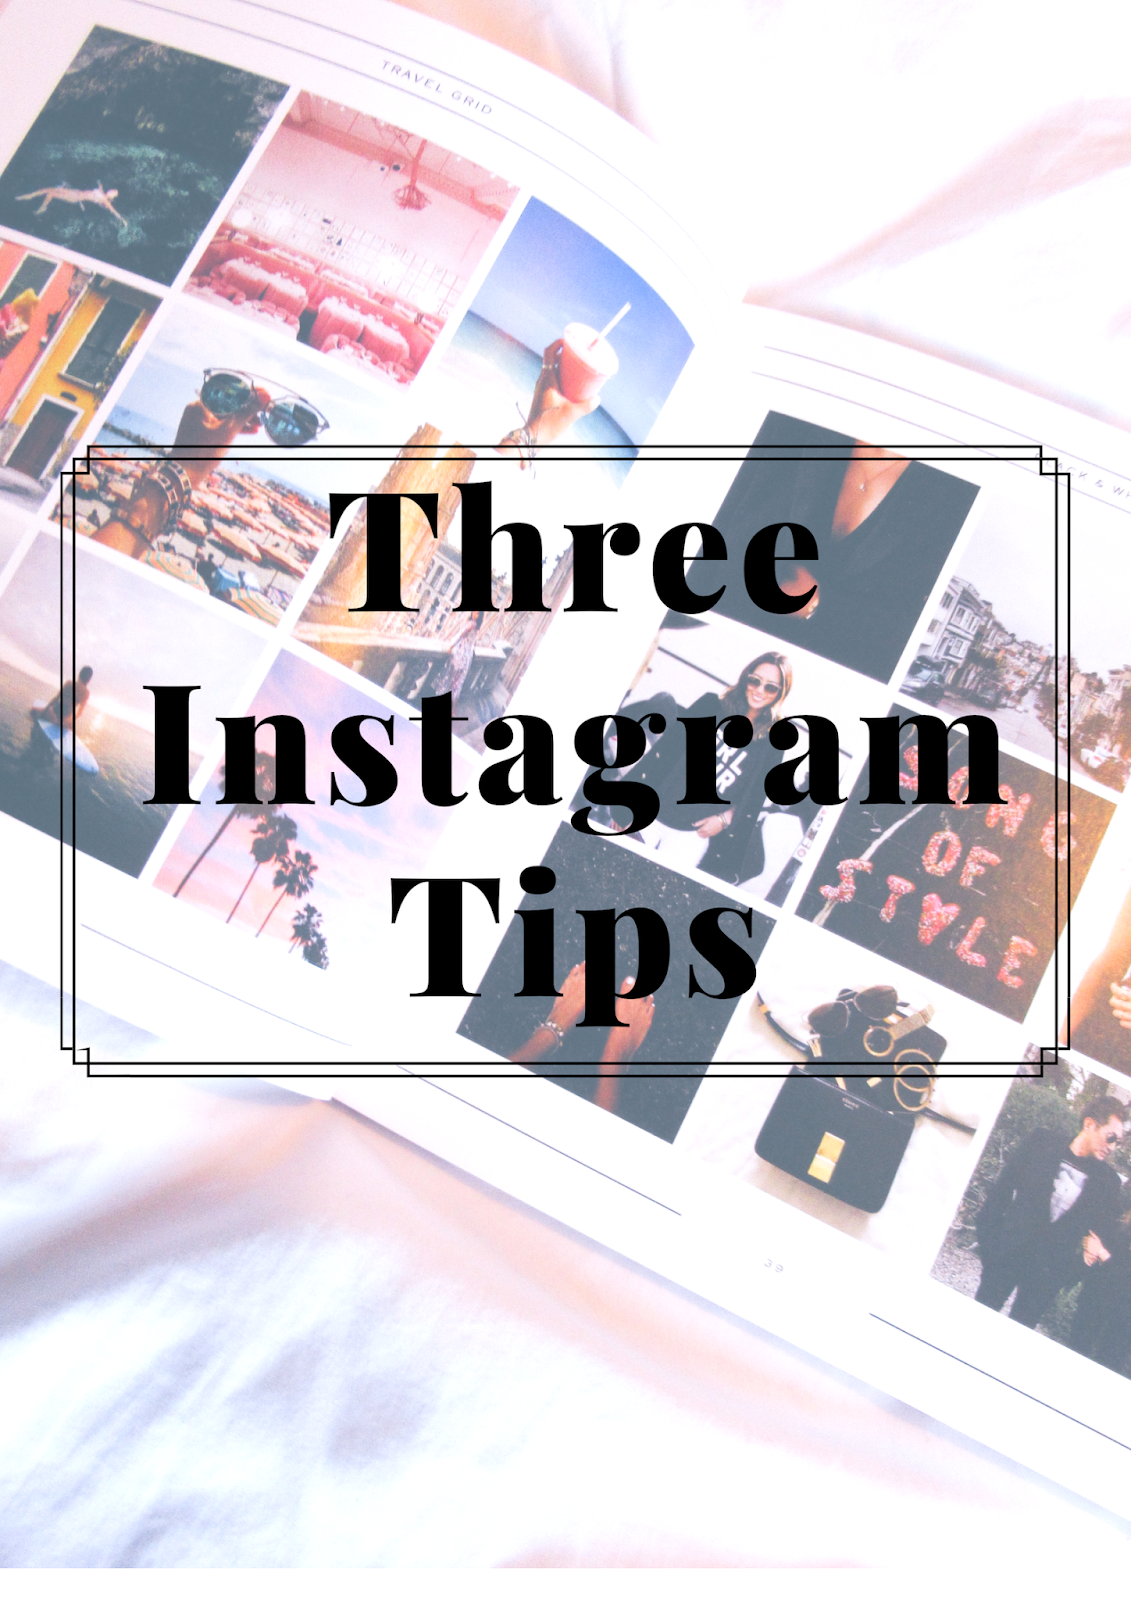 Instagram, tips, social media